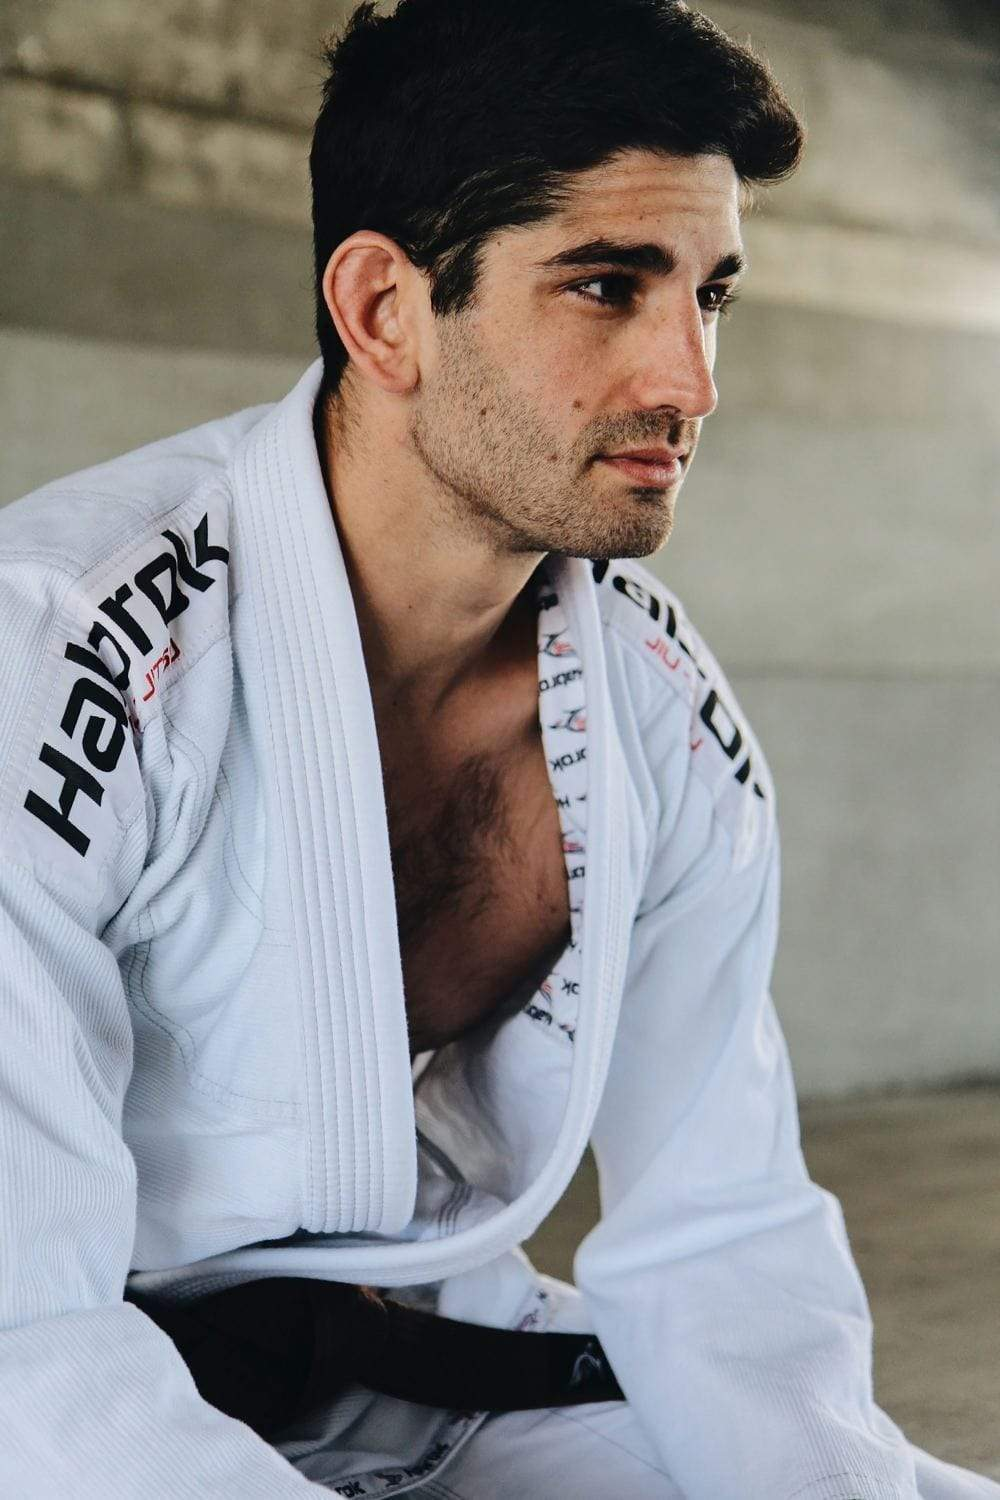 Tatica Leve - Gi Review By Jiu-Jitsu Magazine